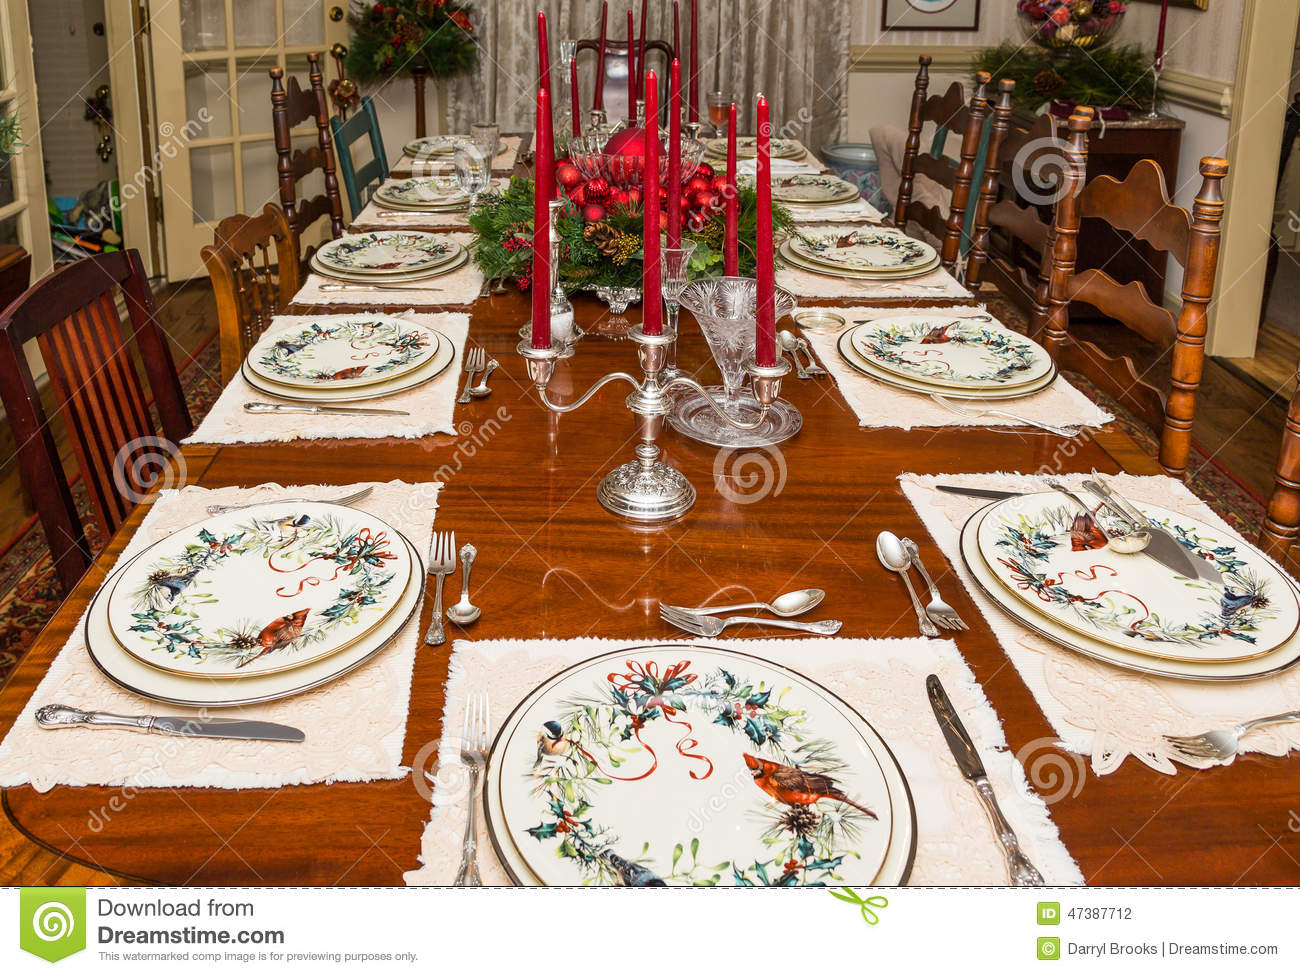 Formally Set Dining Table At Christmas Stock Photo - Image: 47387712